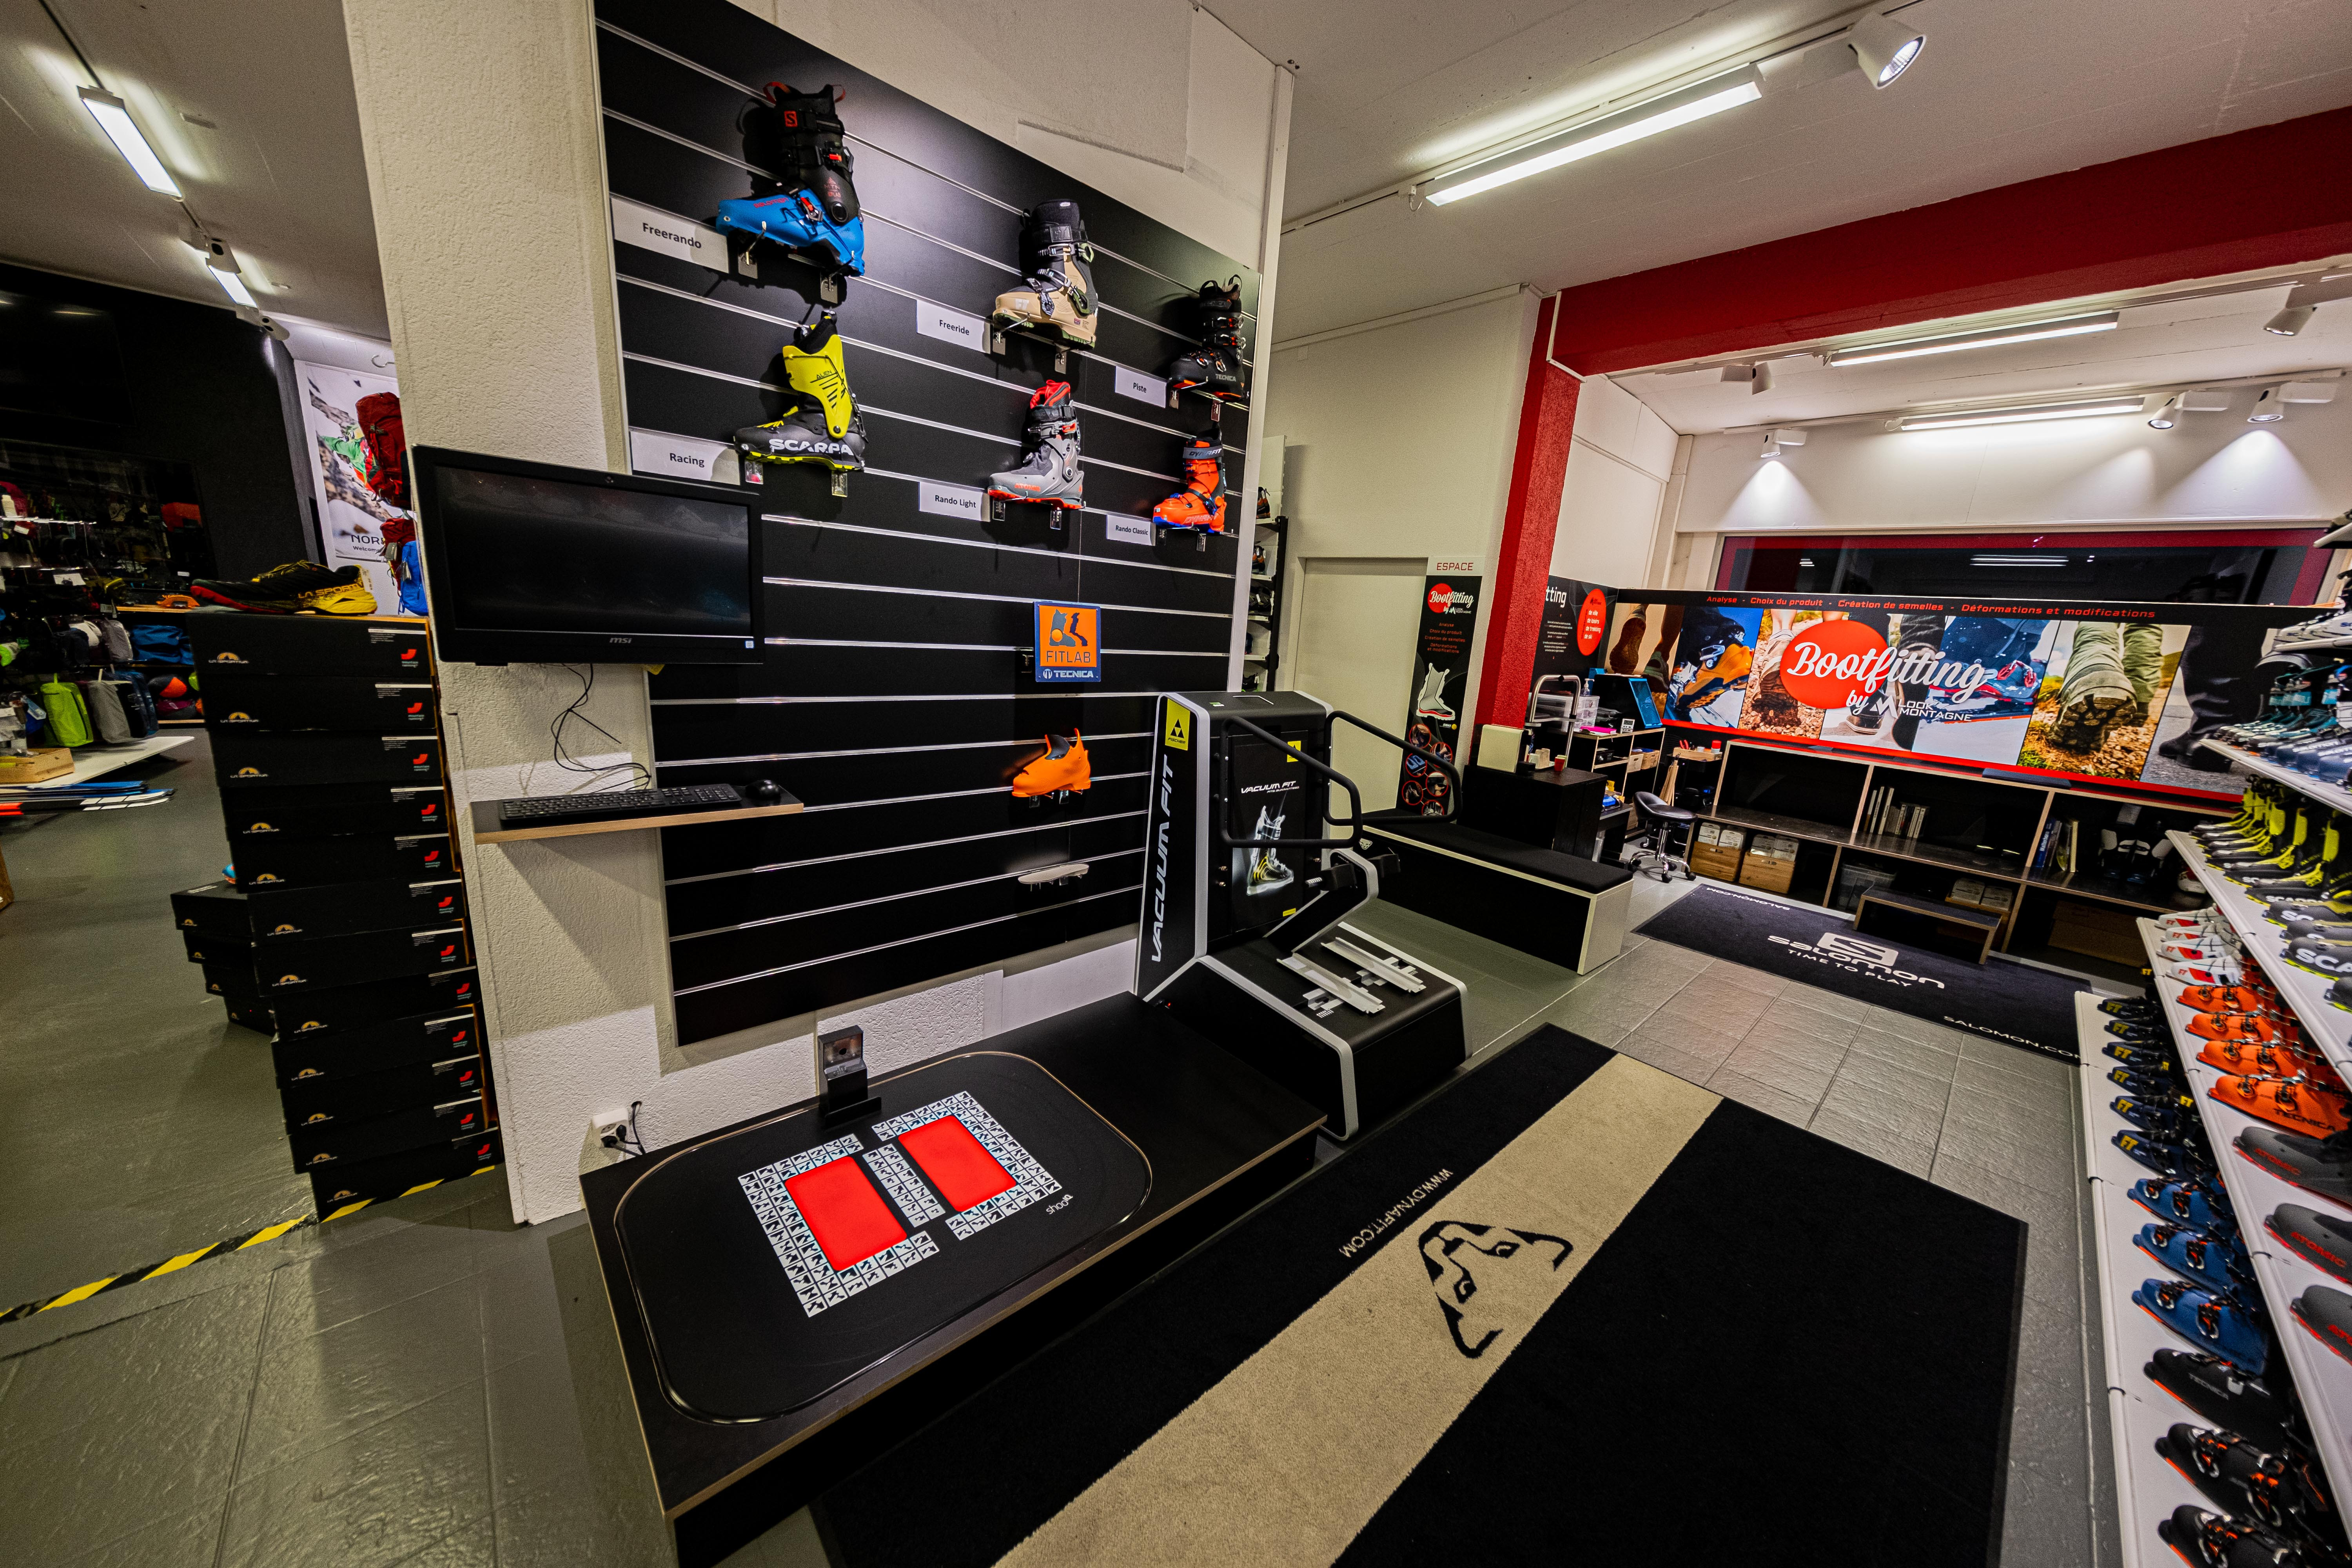 Services Bootfitting